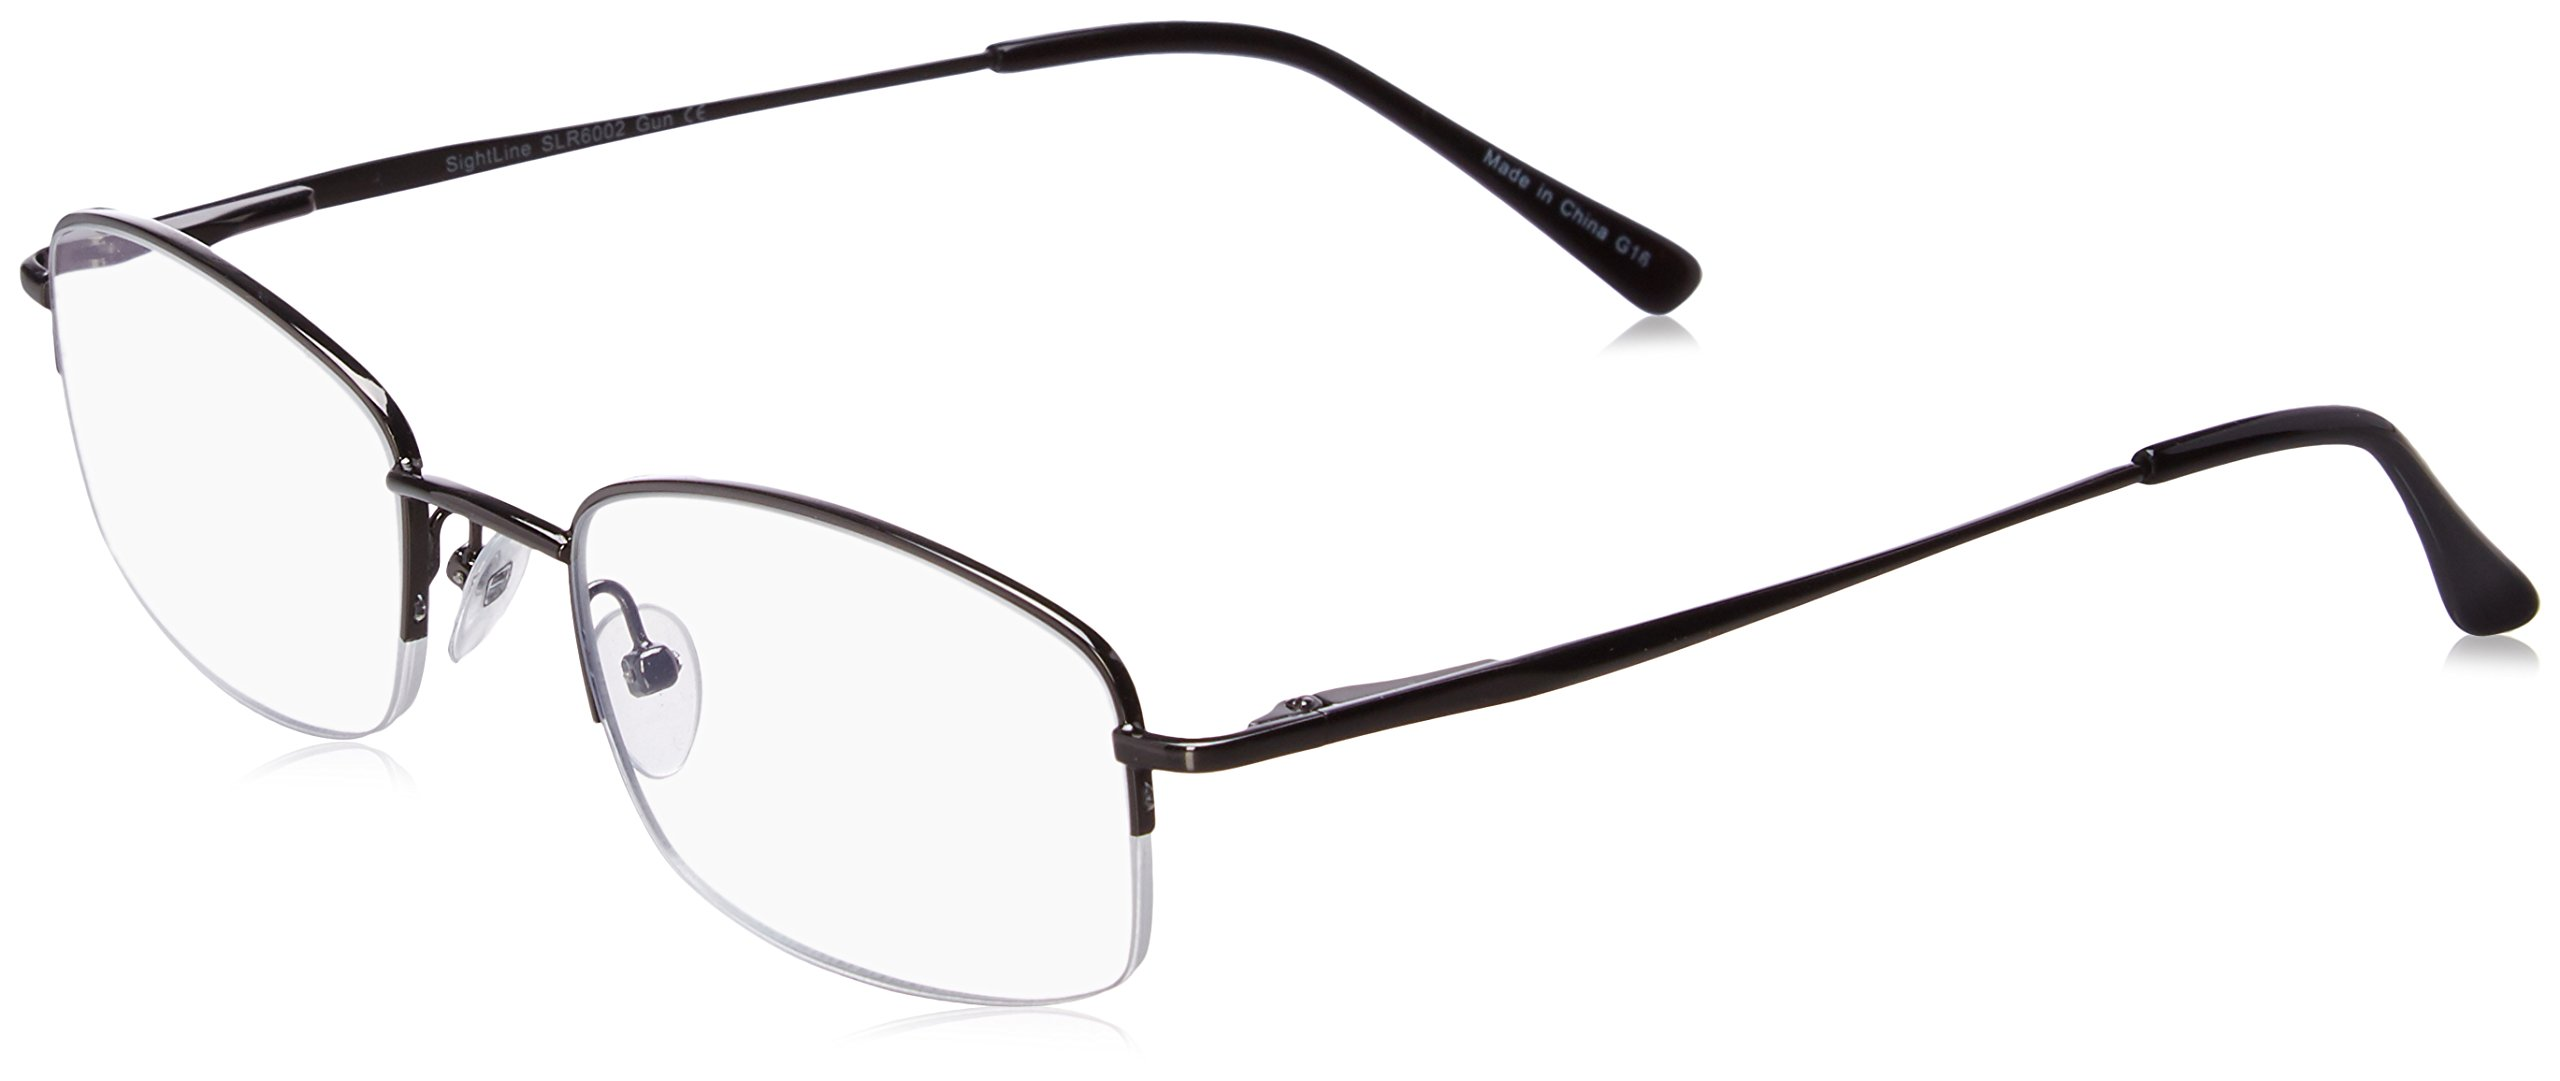 e745649a863 Amazon.com  SightLine Multifocal Computer Reading Glasses 6002 Semi-Rimless  Designer Frames (2.00